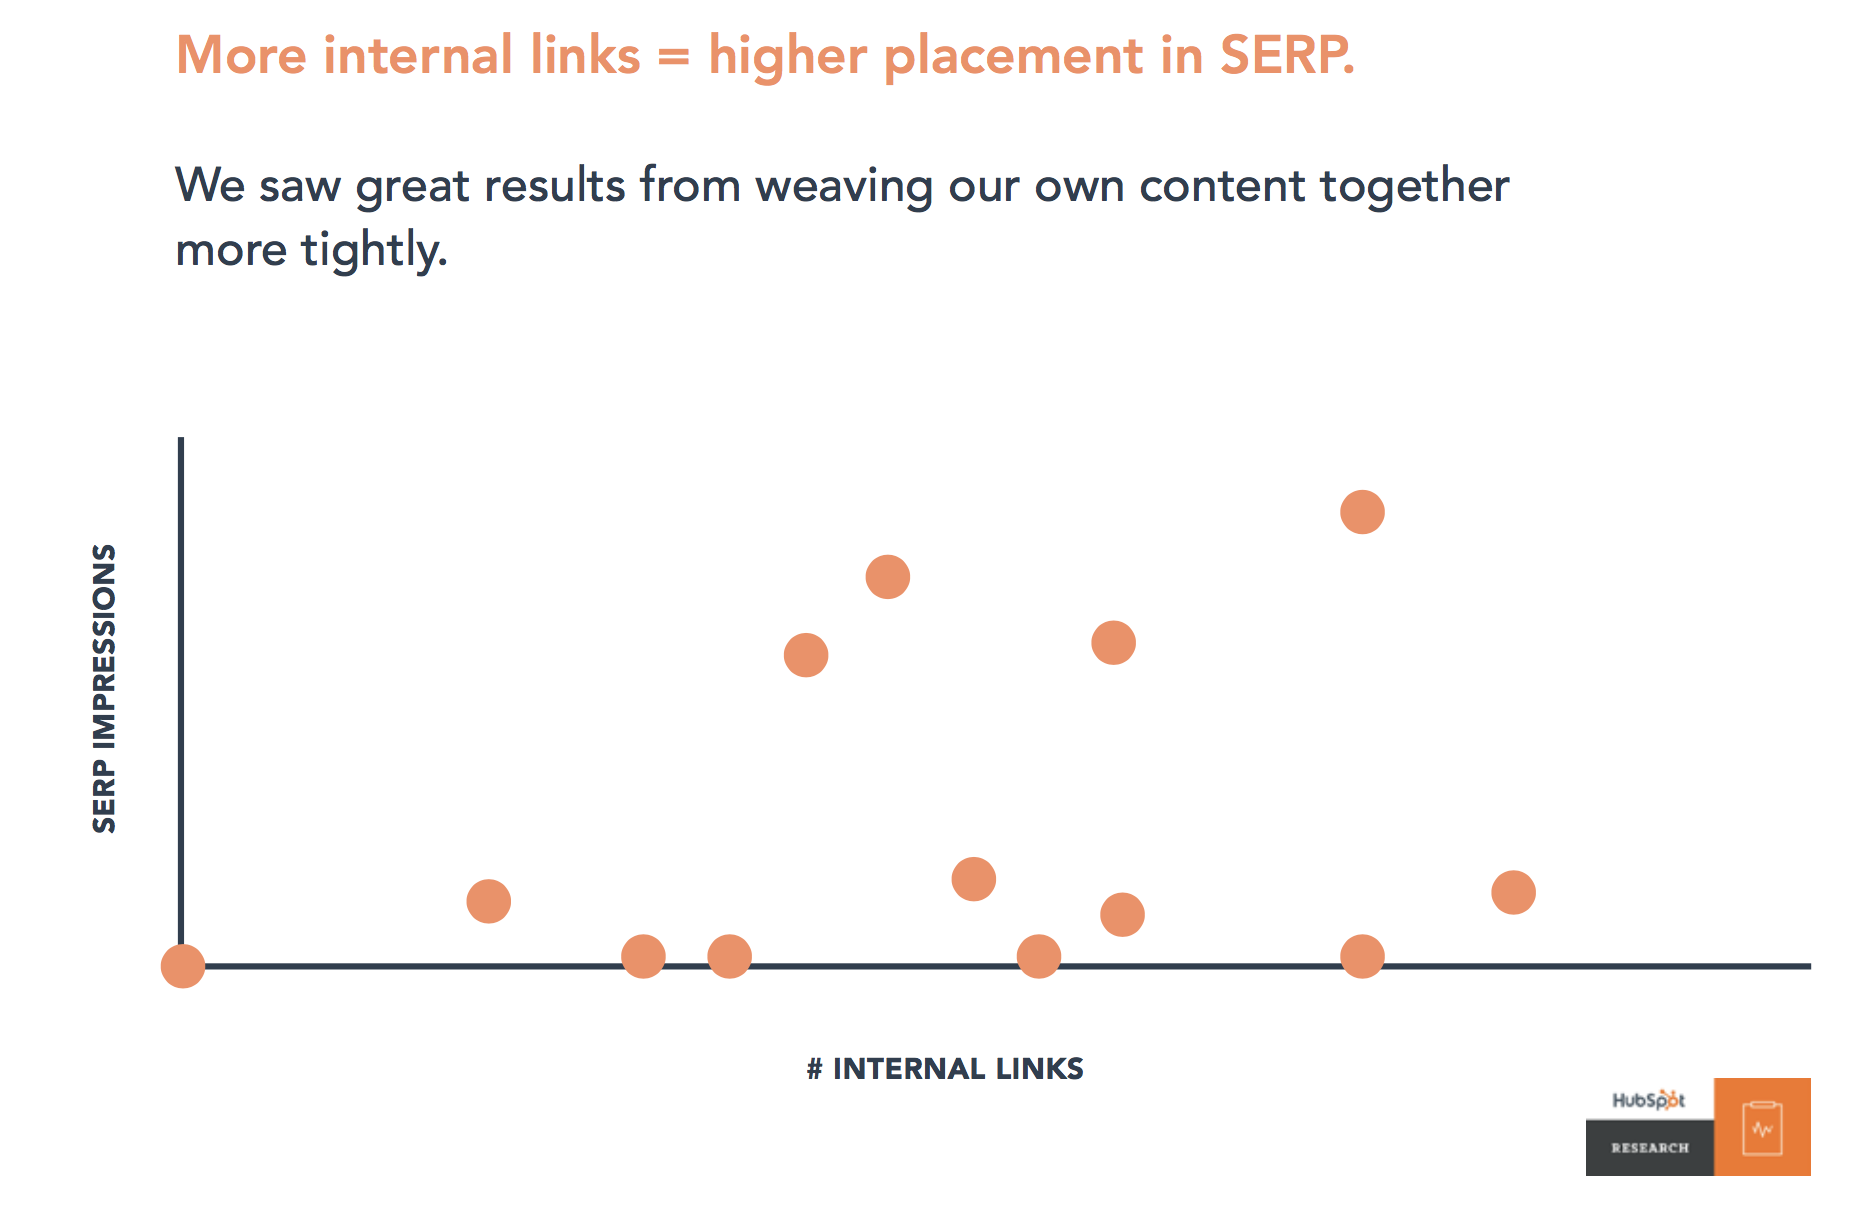 Correlation between number of internal links and SERP impressions from Hubspot